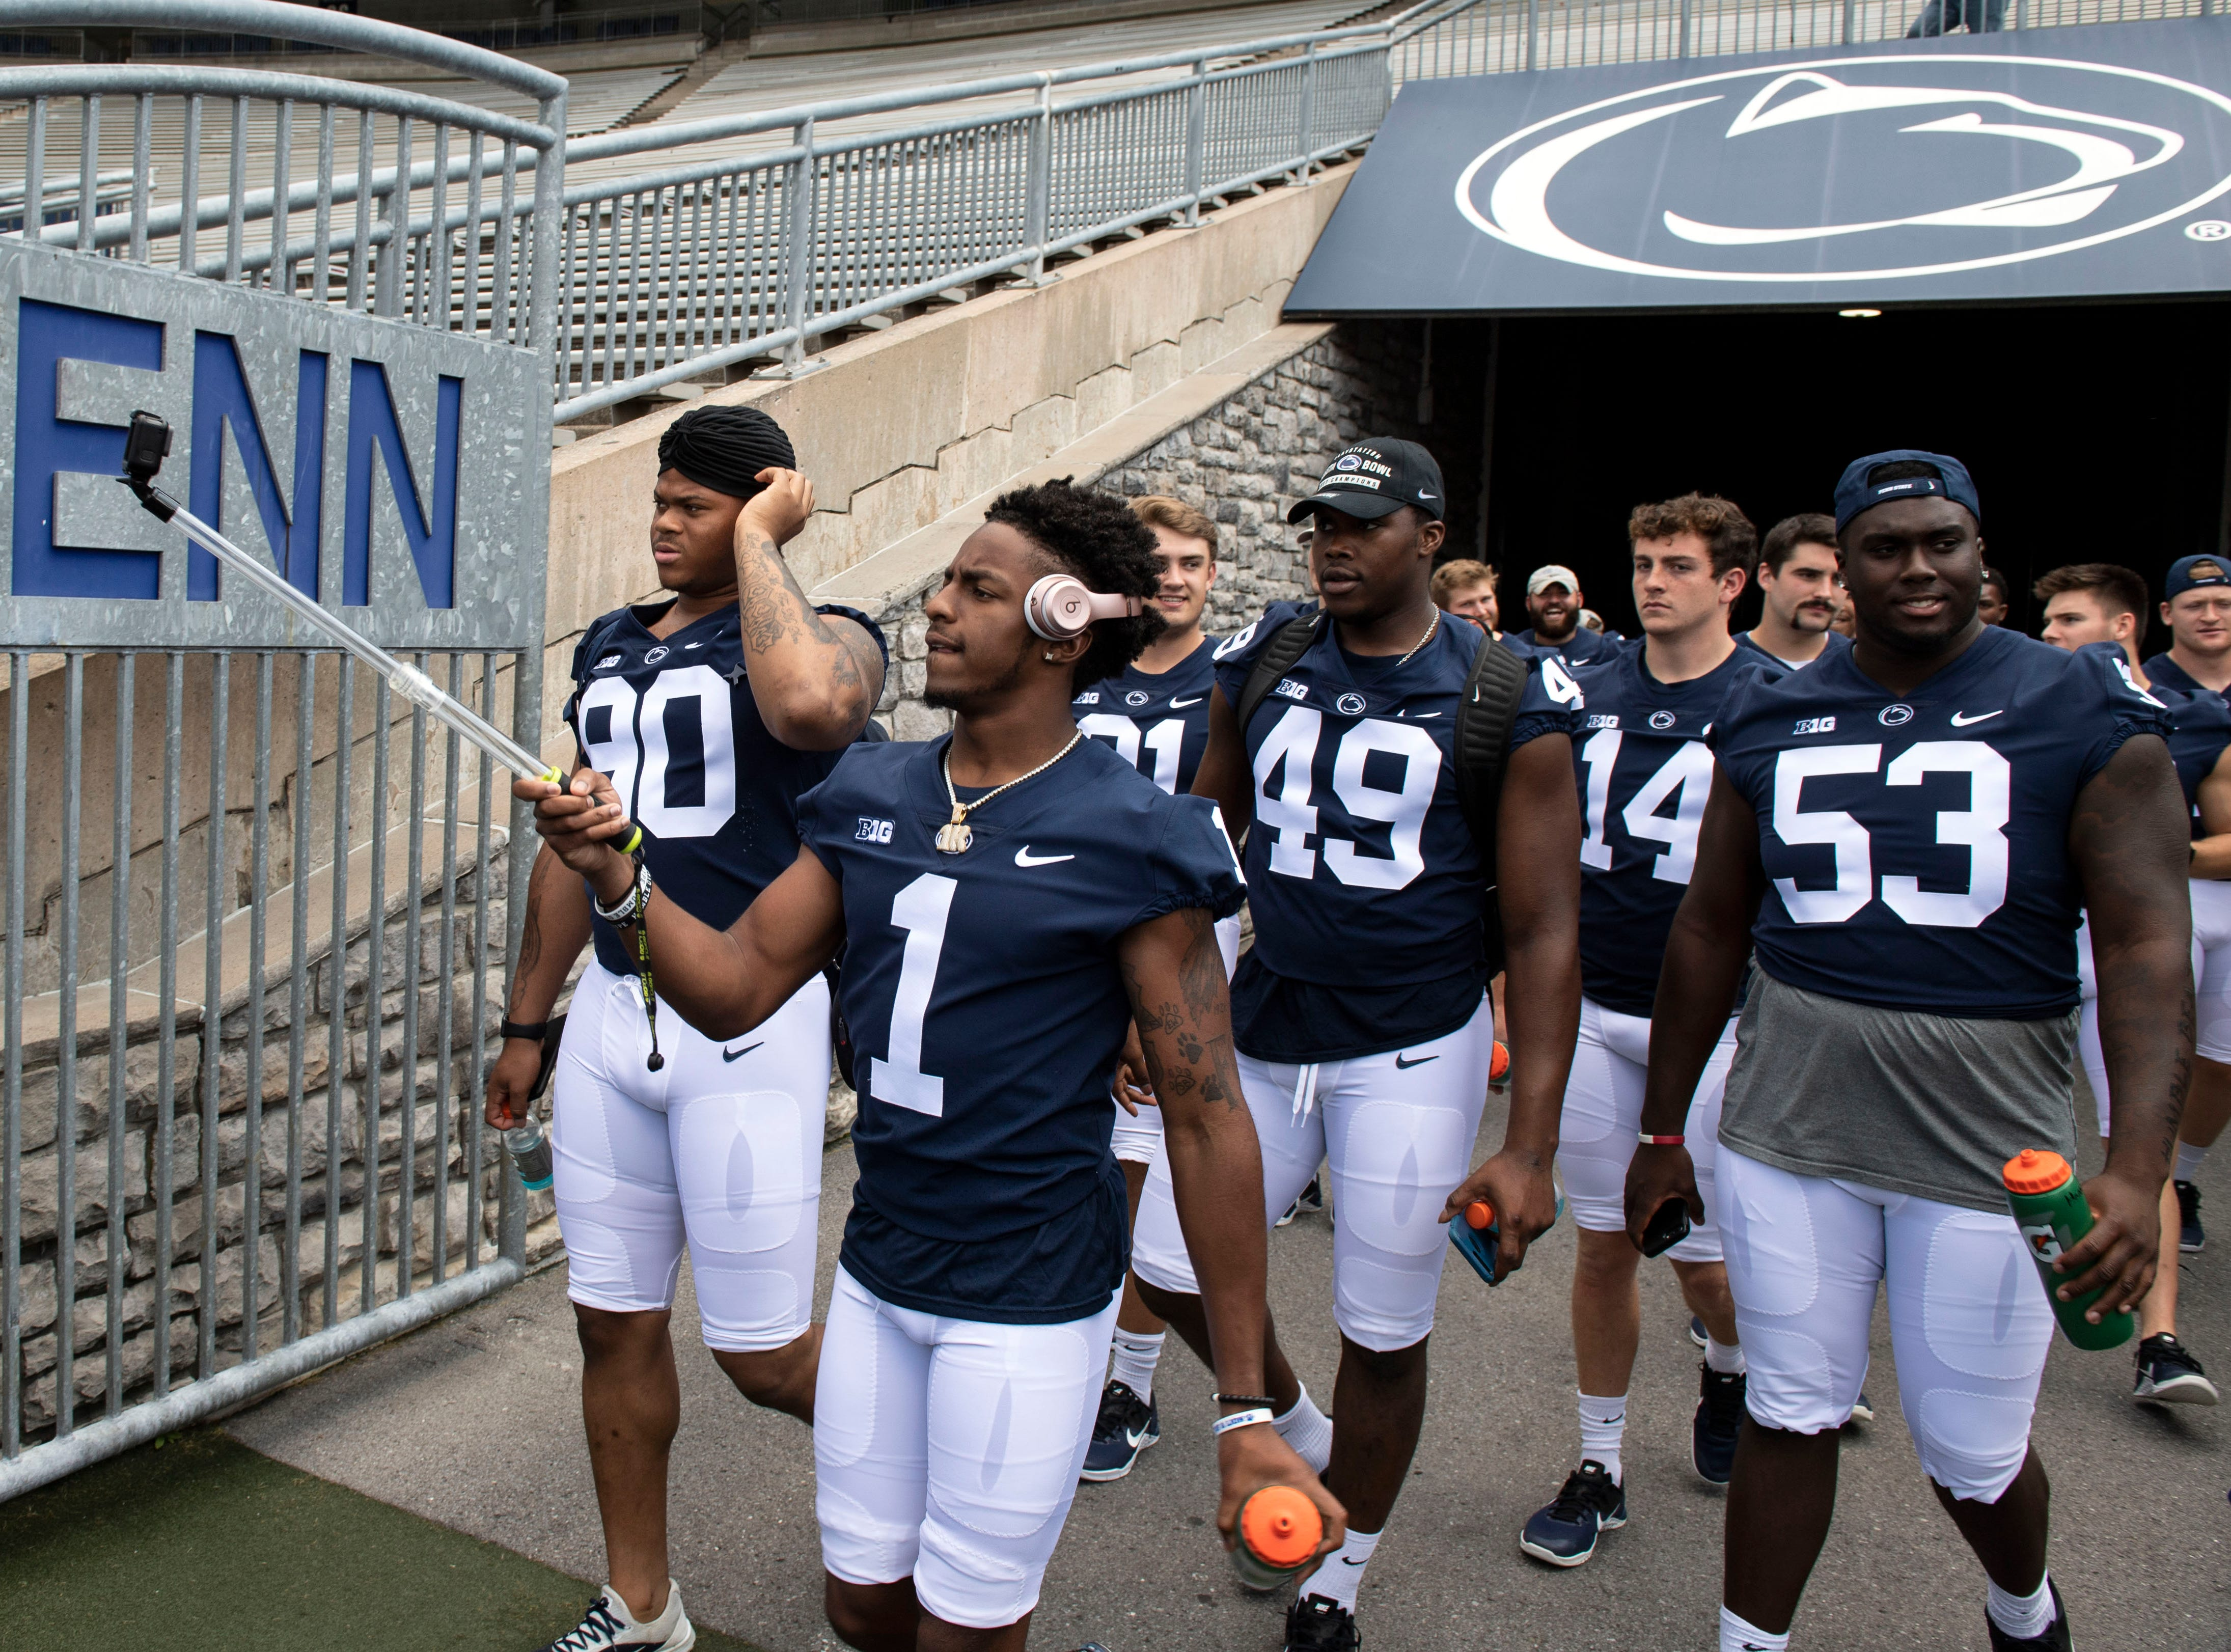 K.J. Hamler (1) records on a GoPro as the Penn State football team makes its way on the field during media day at Beaver Stadium on Saturday, August 4, 2018.